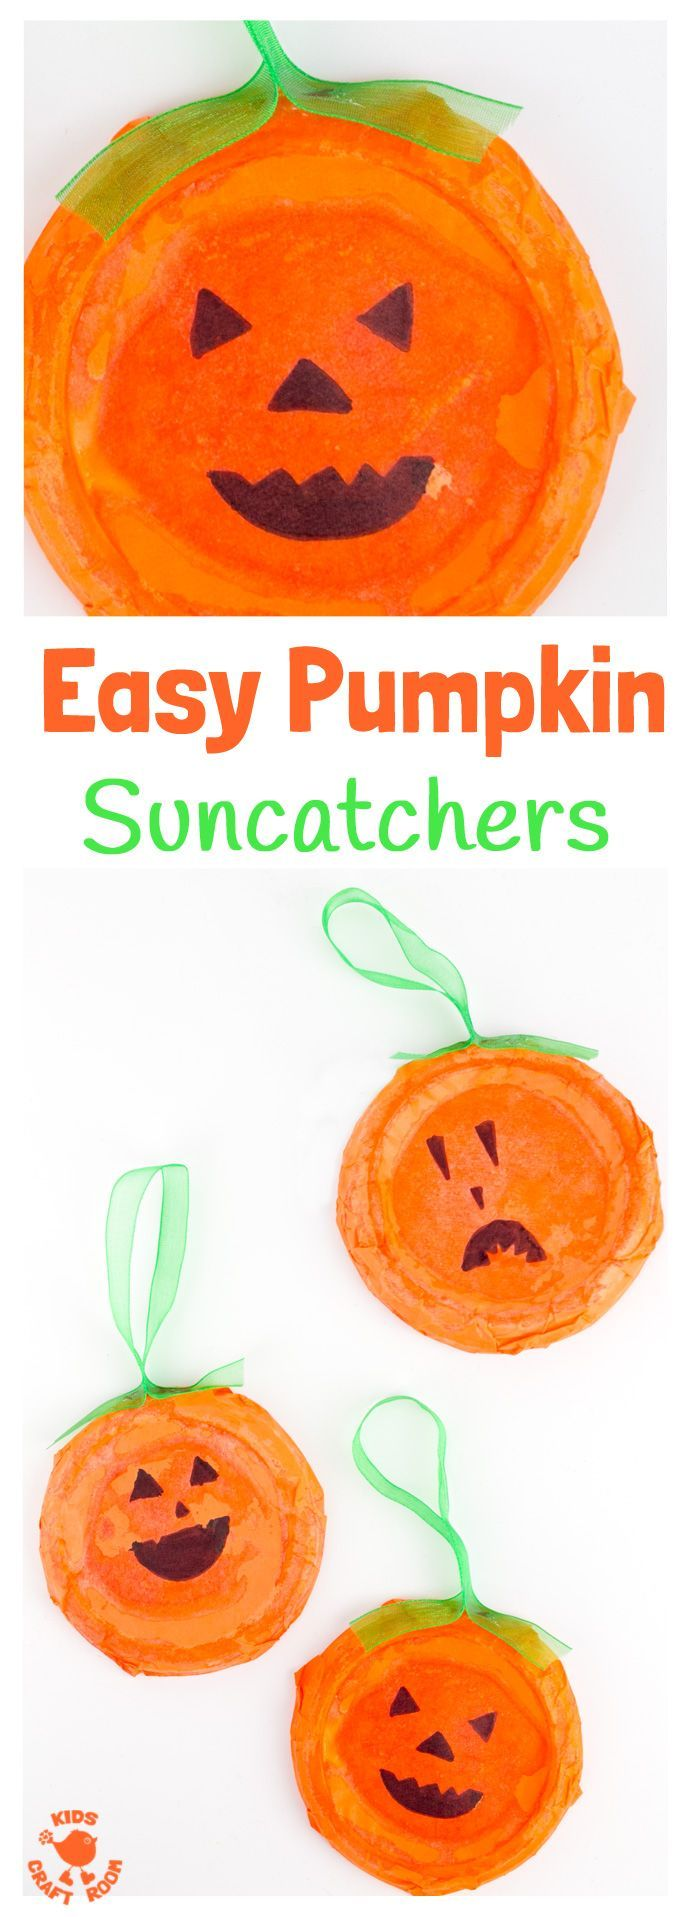 20+ Simple pumpkin crafts for toddlers info